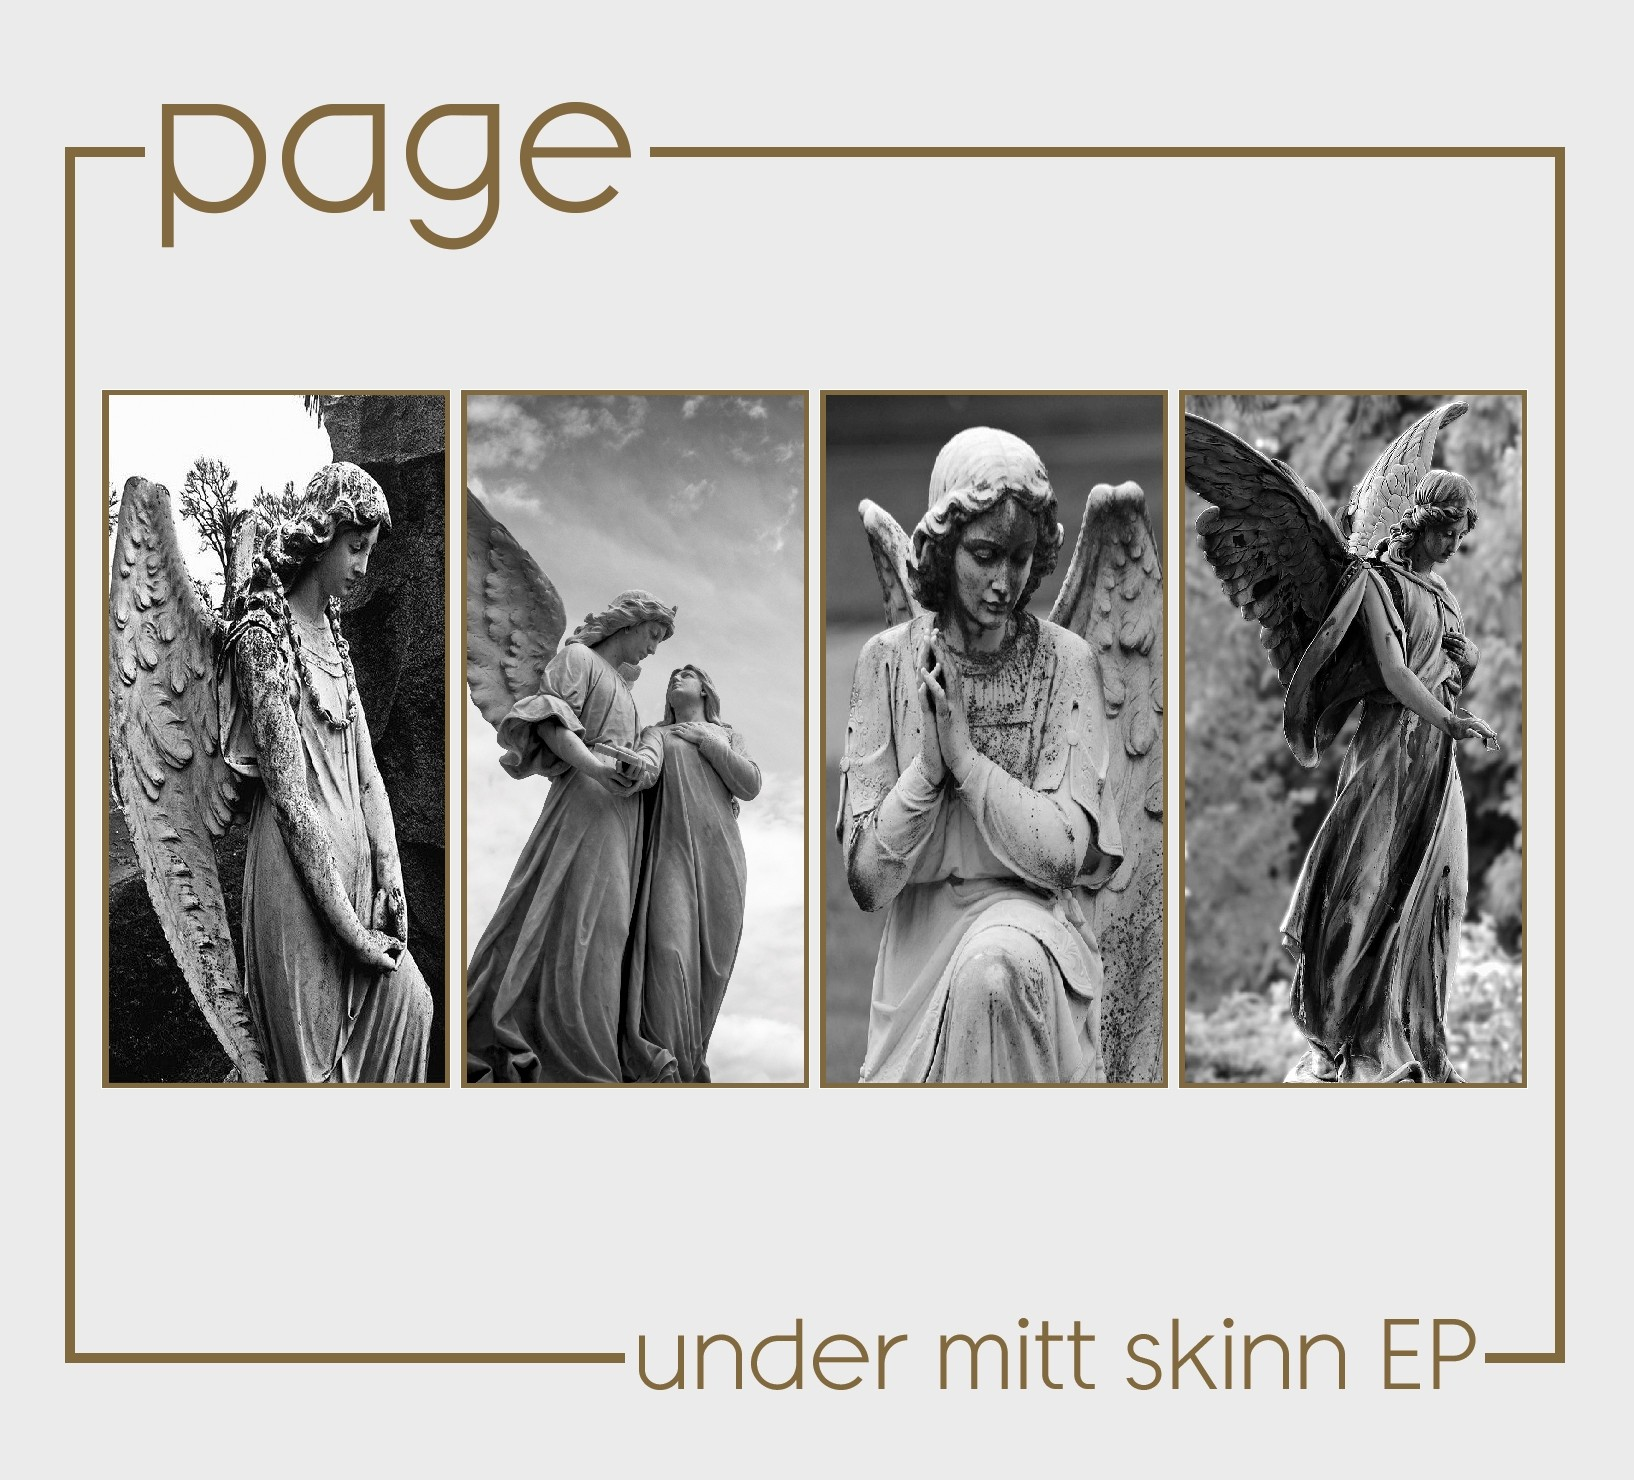 Page - Under mitt skinn (Limited Edition) - CD EP